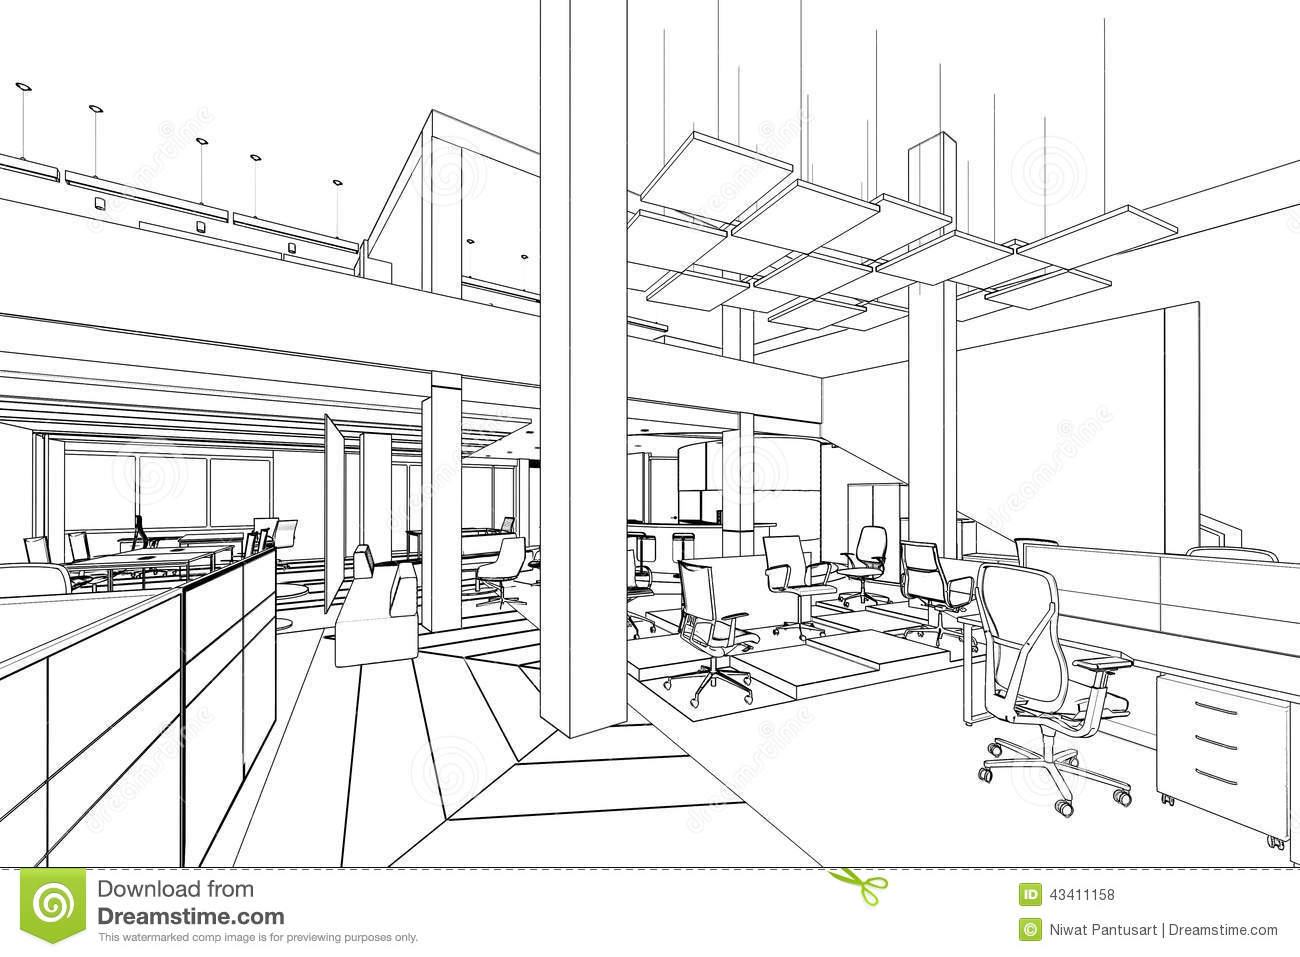 Sketch Design Interior Space additionally Architectural Plan With Furniture In Top View Vector 24444936 besides Stock Illustration Outline Sketch Interior Office Area Clipping Path Image43411158 additionally Stock Illustration Interior Vector Drawing Line White Background Architectural Design Image63969204 likewise Stock Illustration Outline Sketch Interior Reception Area Clipping Path Image43413501. on stock illustration interior outline sketch furniture architectural design blueprint